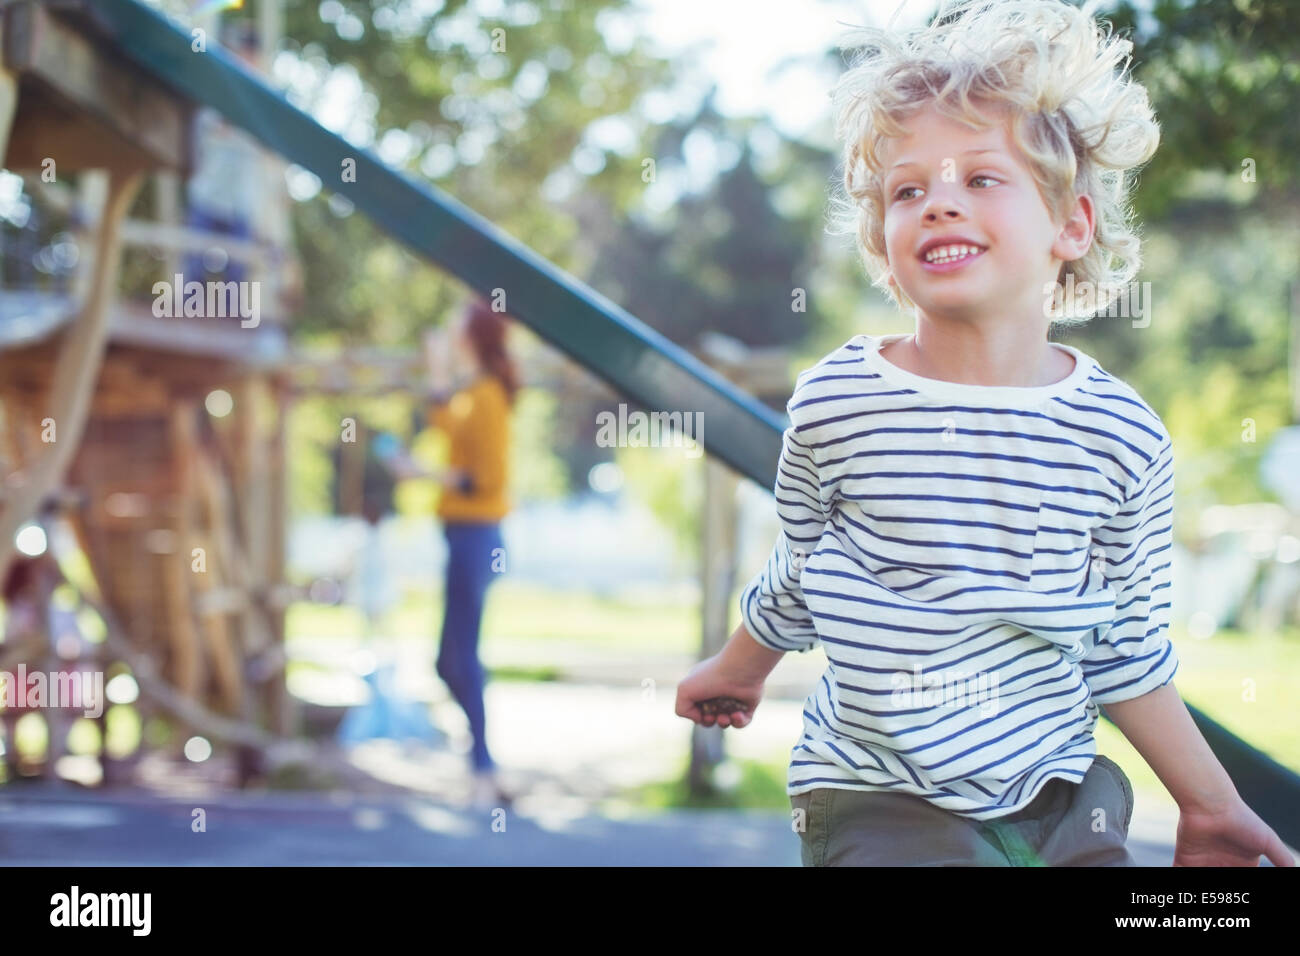 Boy playing on play ground - Stock Image